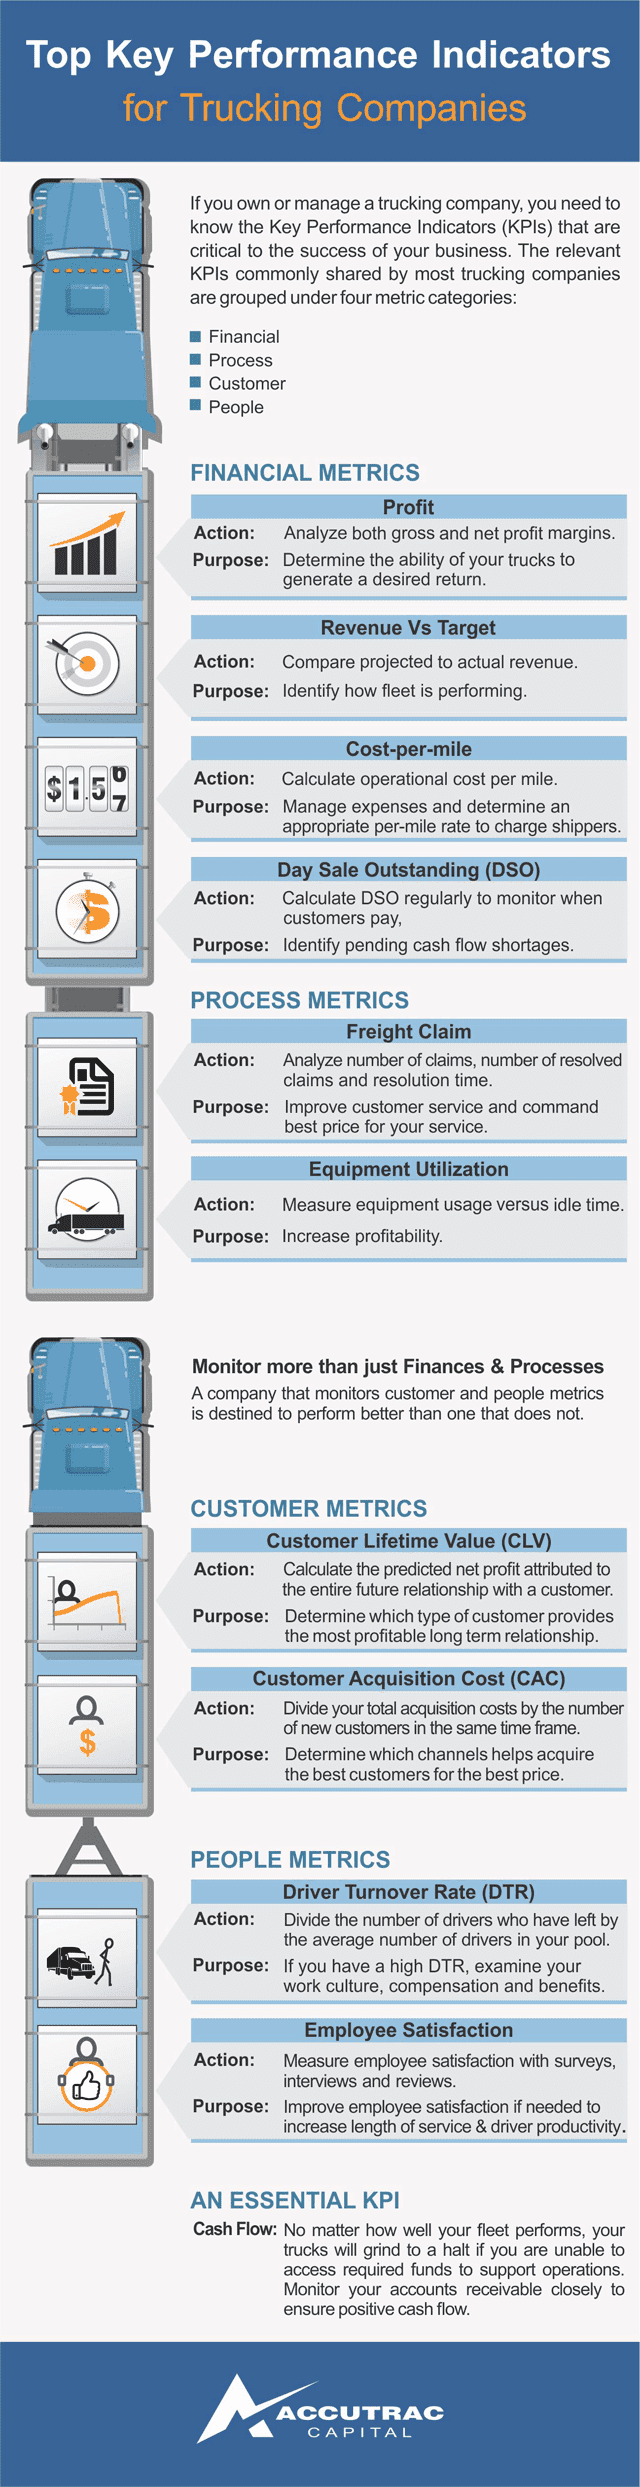 The Essential KPIs for Trucking Companies #infographic